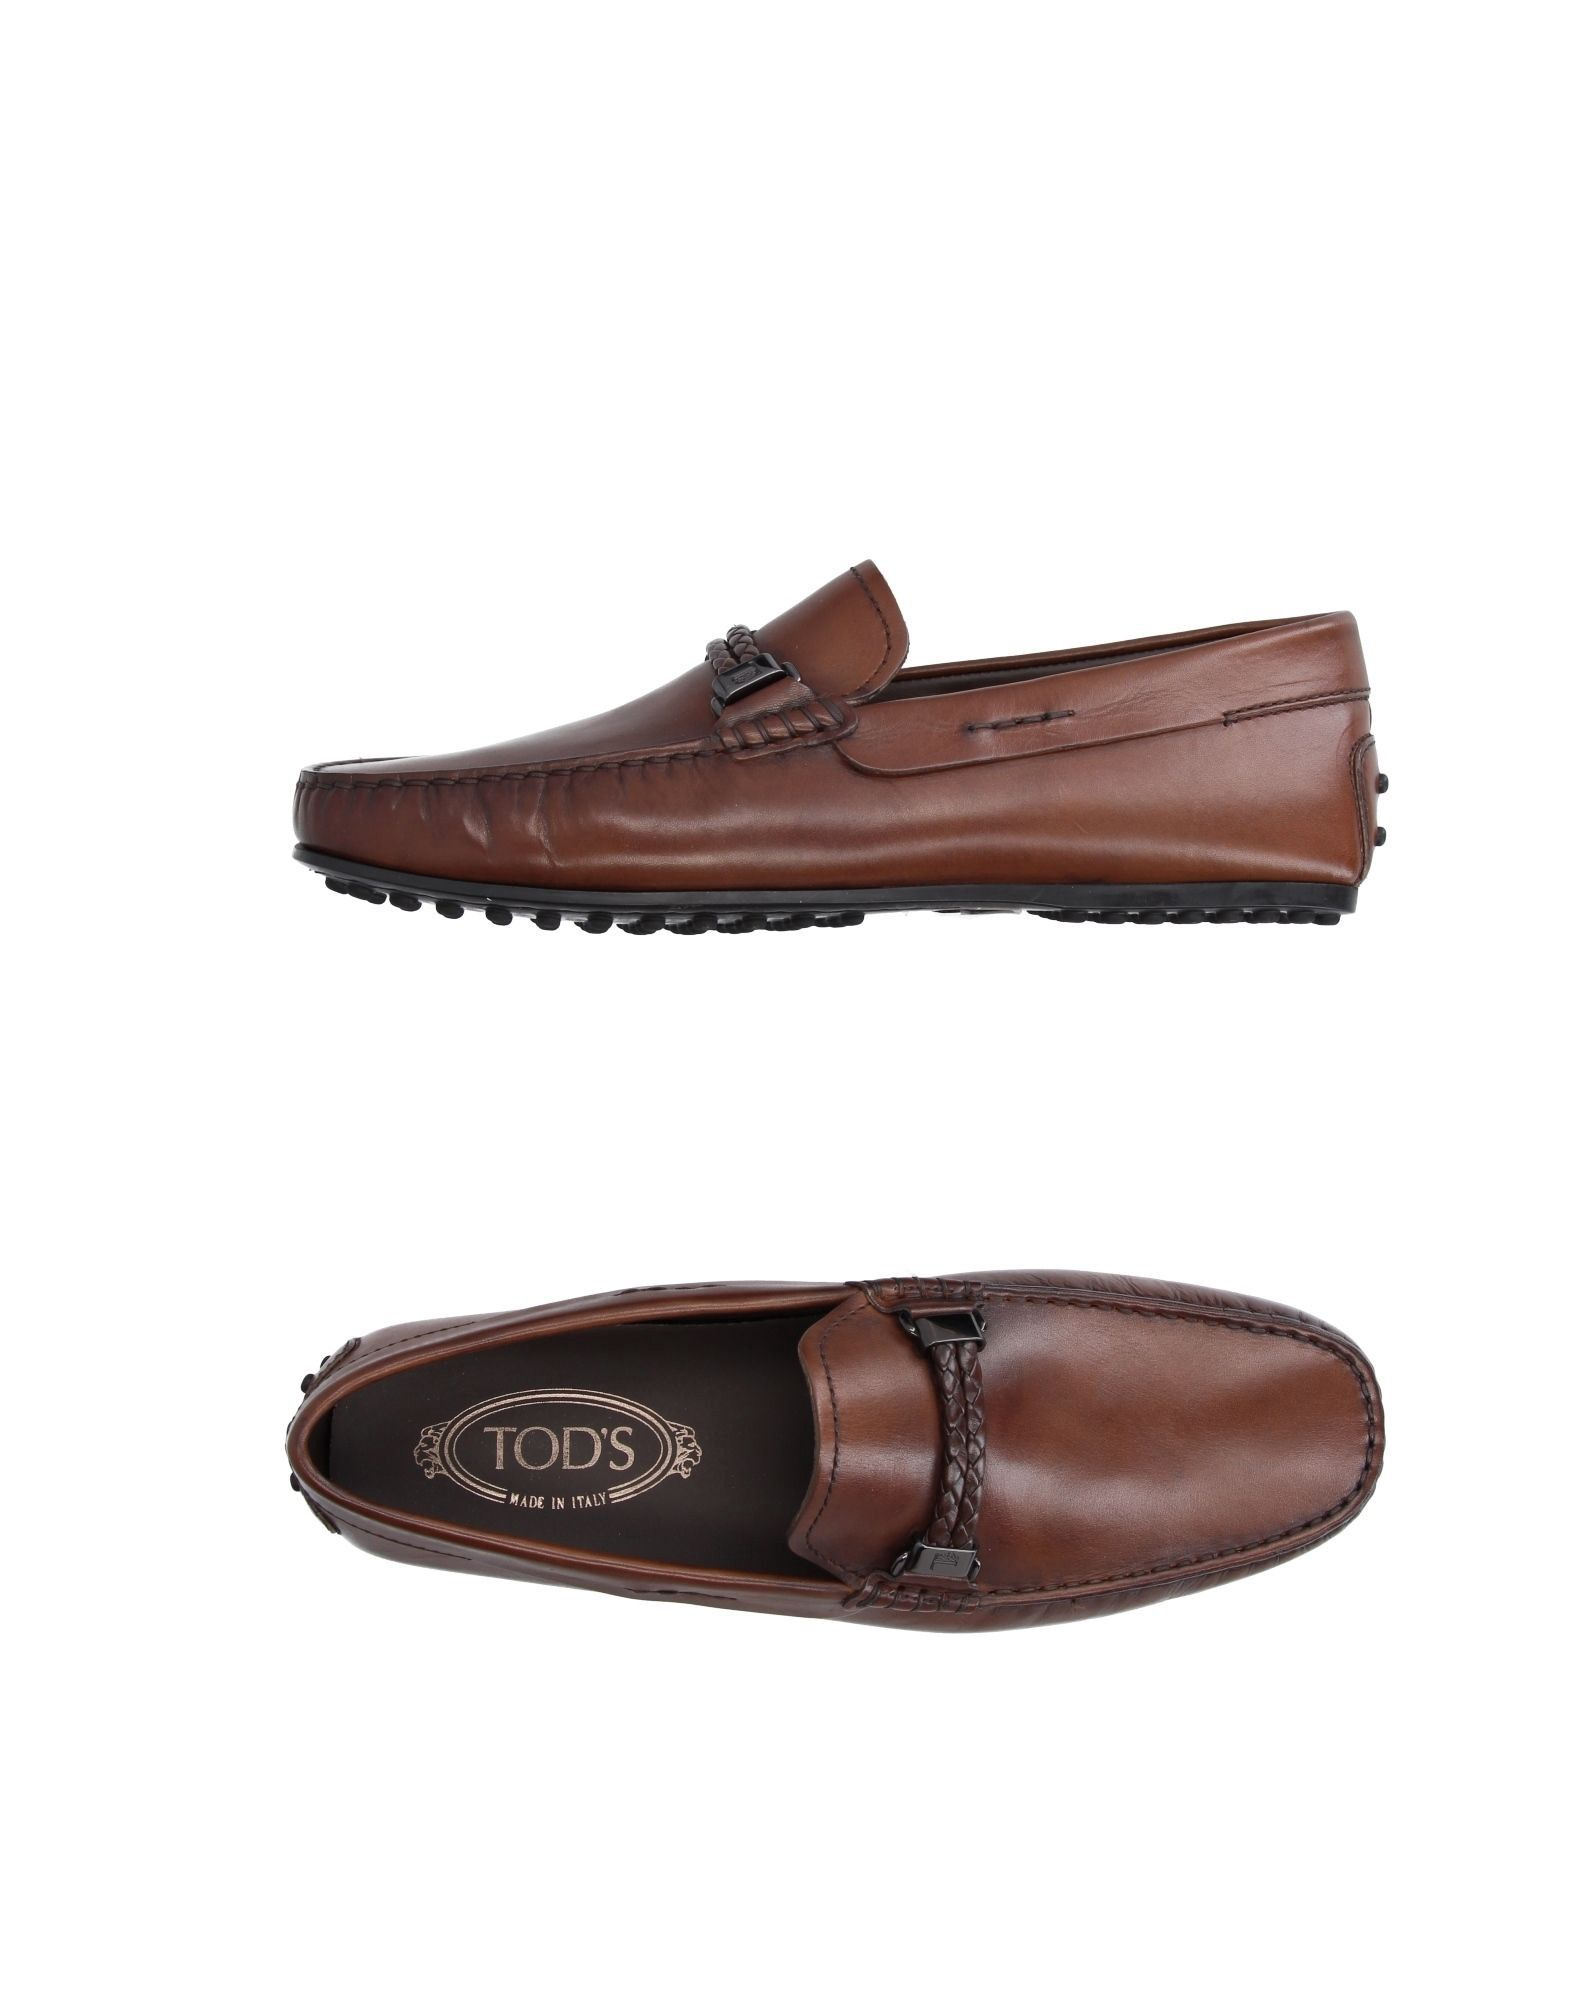 TOD'S Loafers Cocoa Men